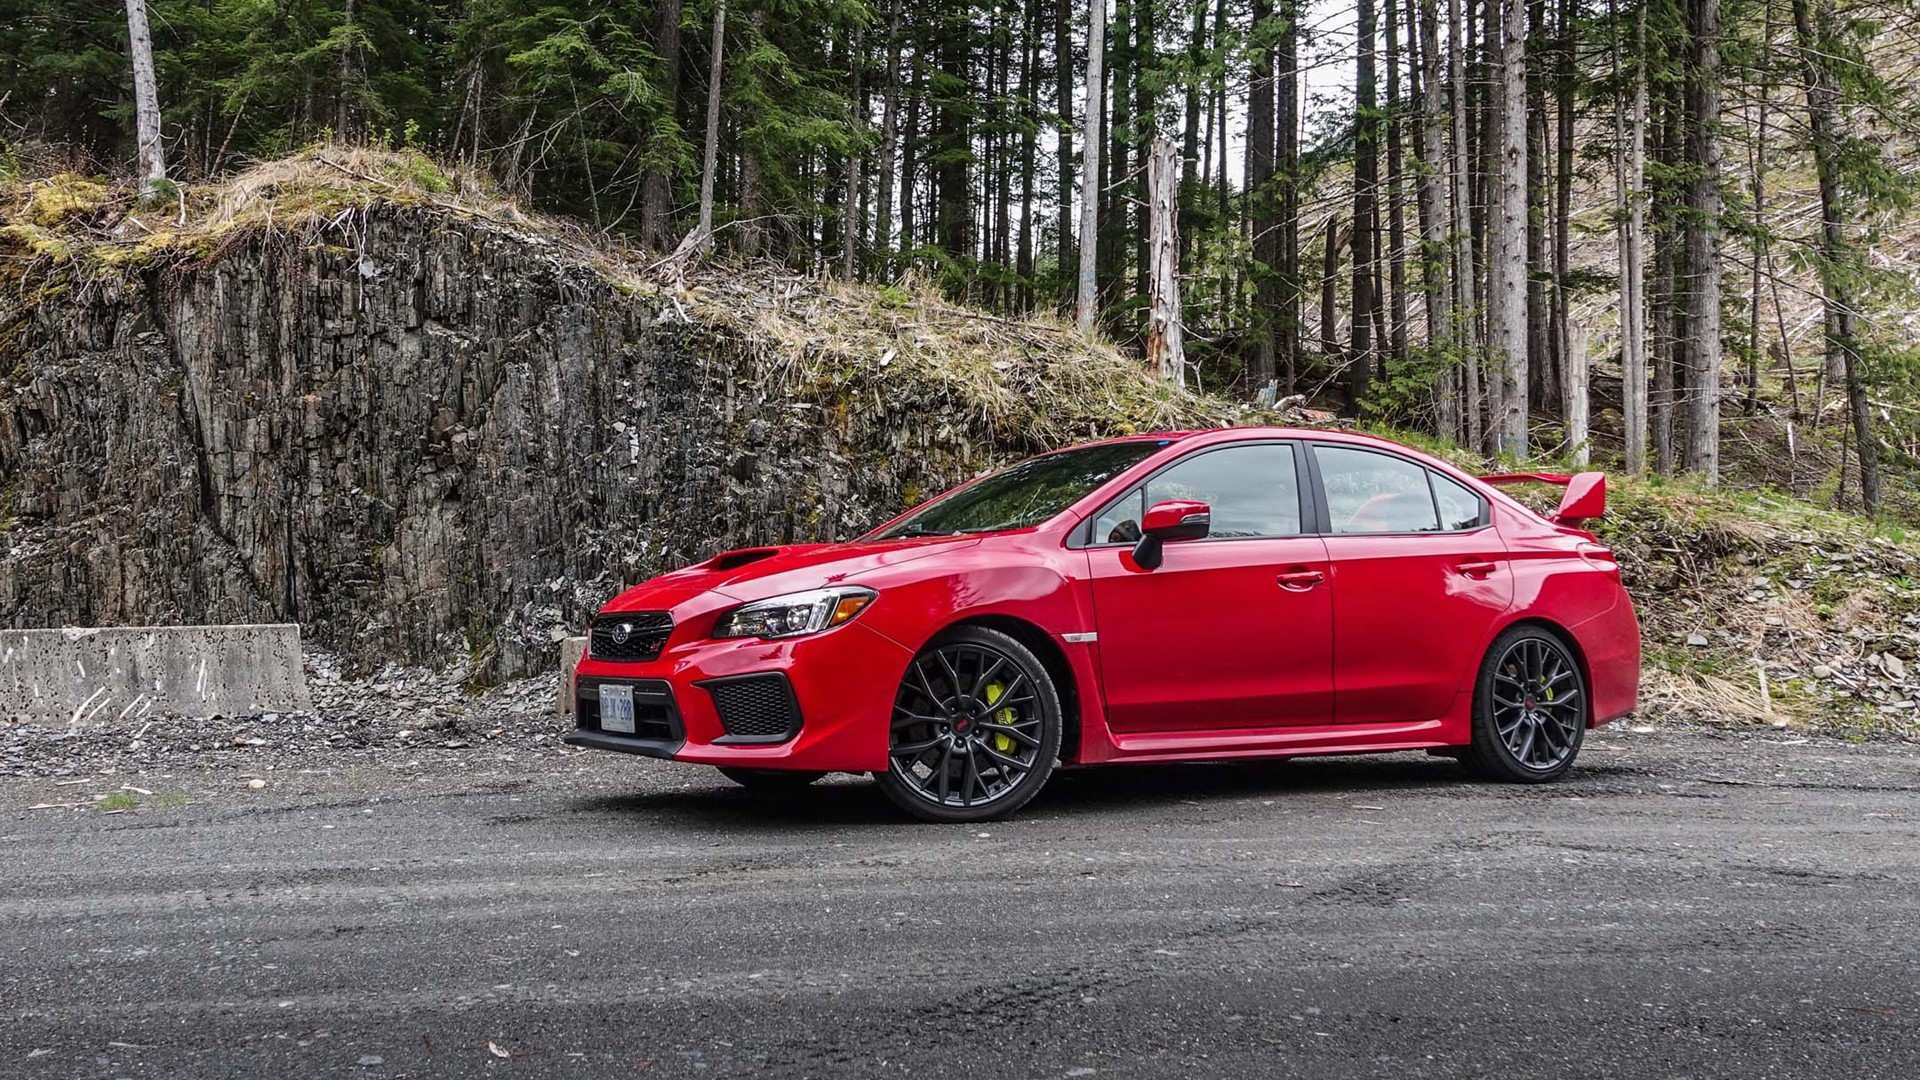 66 New 2019 Subaru Sti Price Review for 2019 Subaru Sti Price